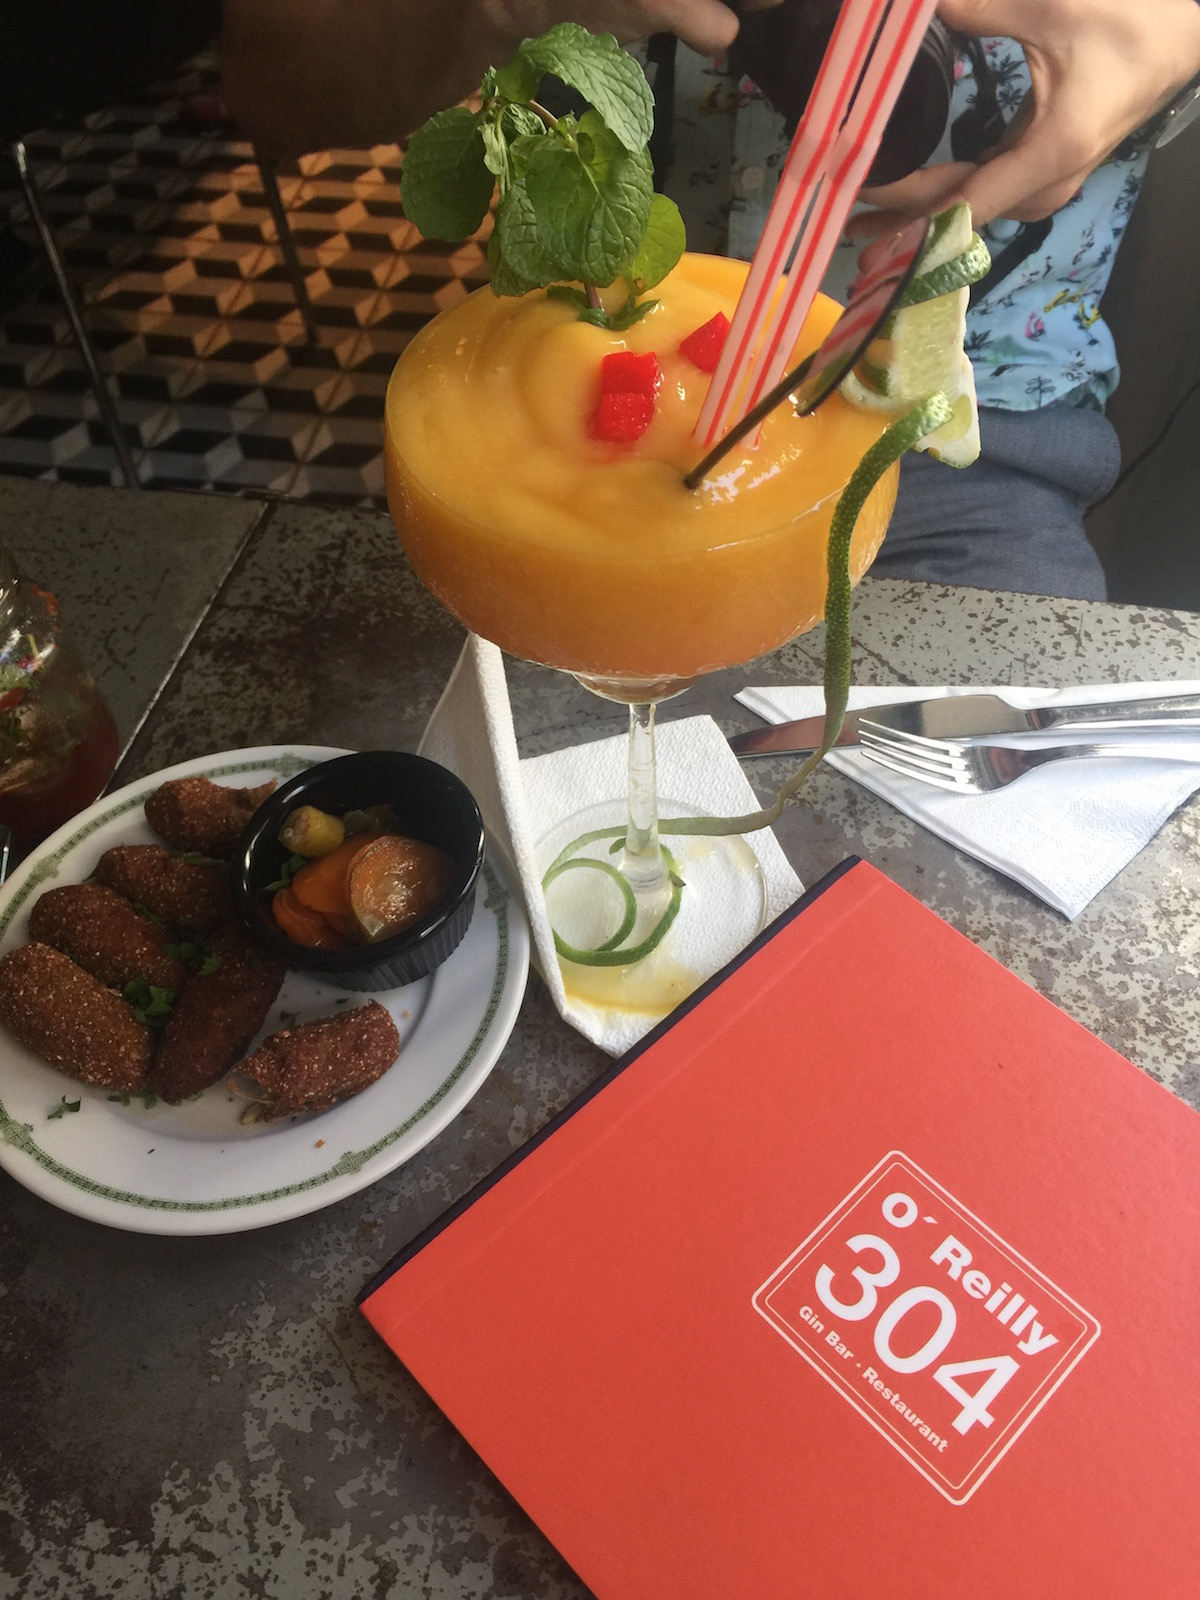 the food scene in cuba is exploding and you can enjoy many restaurants at low price points -  Tessa Juliette | http://travelwheretonext.com/cuba